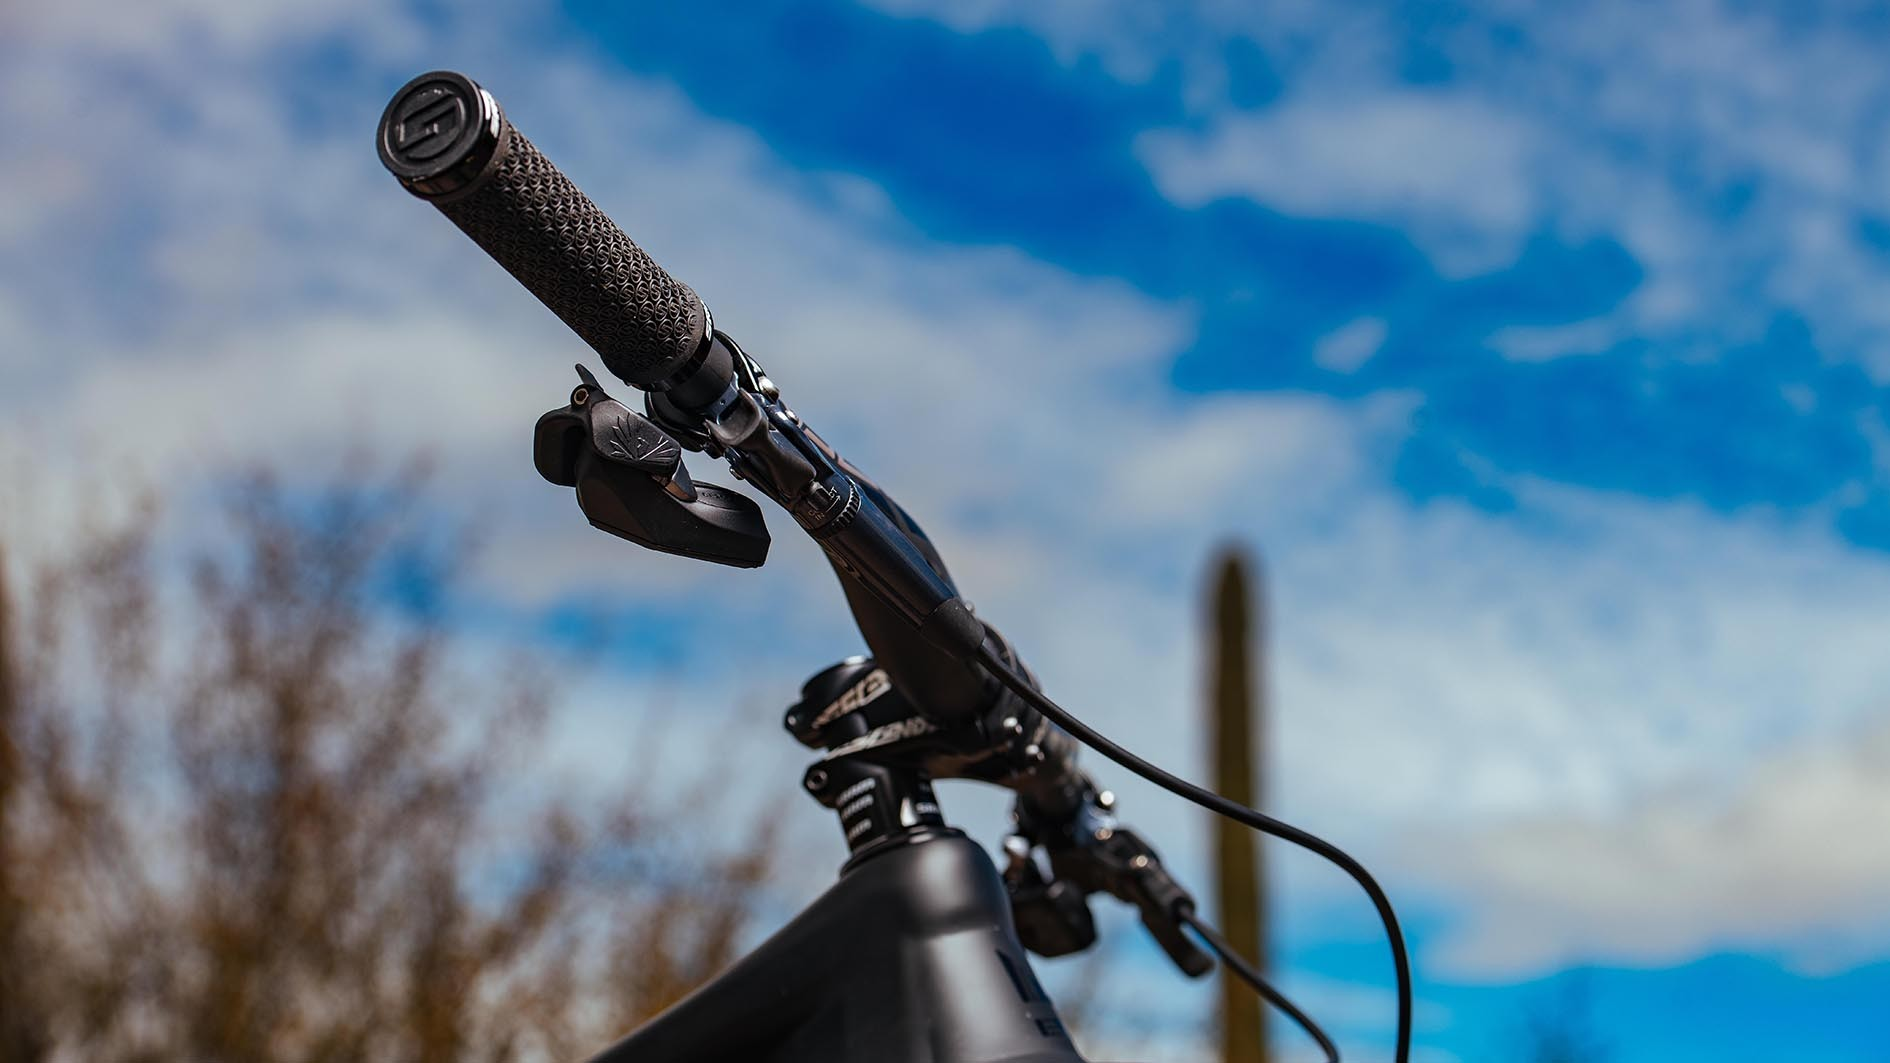 Thanks to the wireless system it means you can ditch a cable (or two if you get the Reverb AXS dropper post too) which helps clean up your bike and keep it quieter on the trail